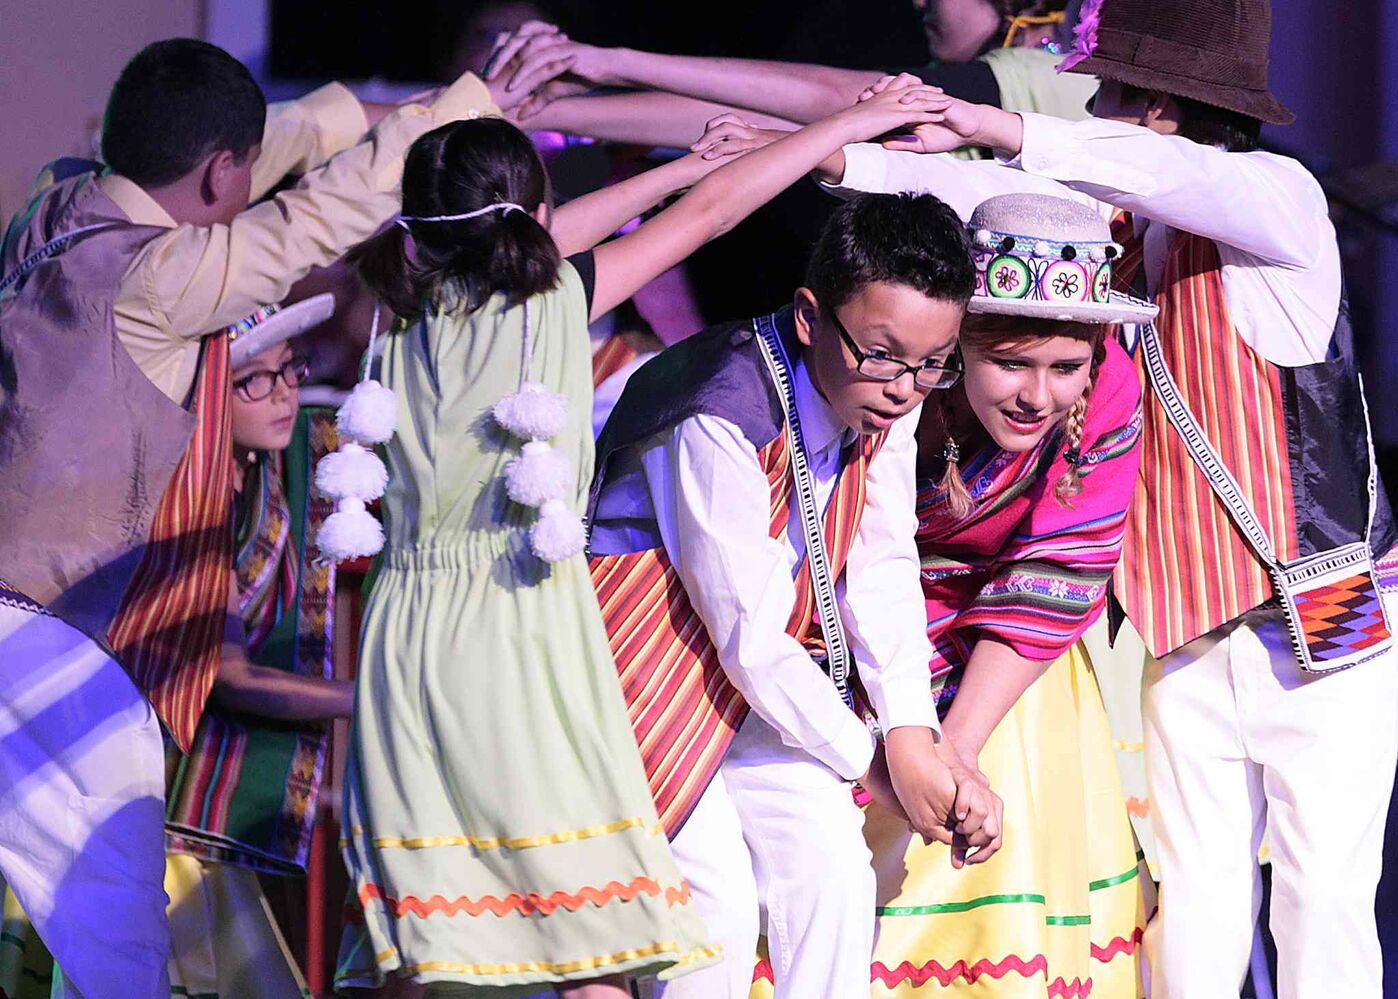 Little ones share their cultural heritage through dance at the Chilean pavilion .